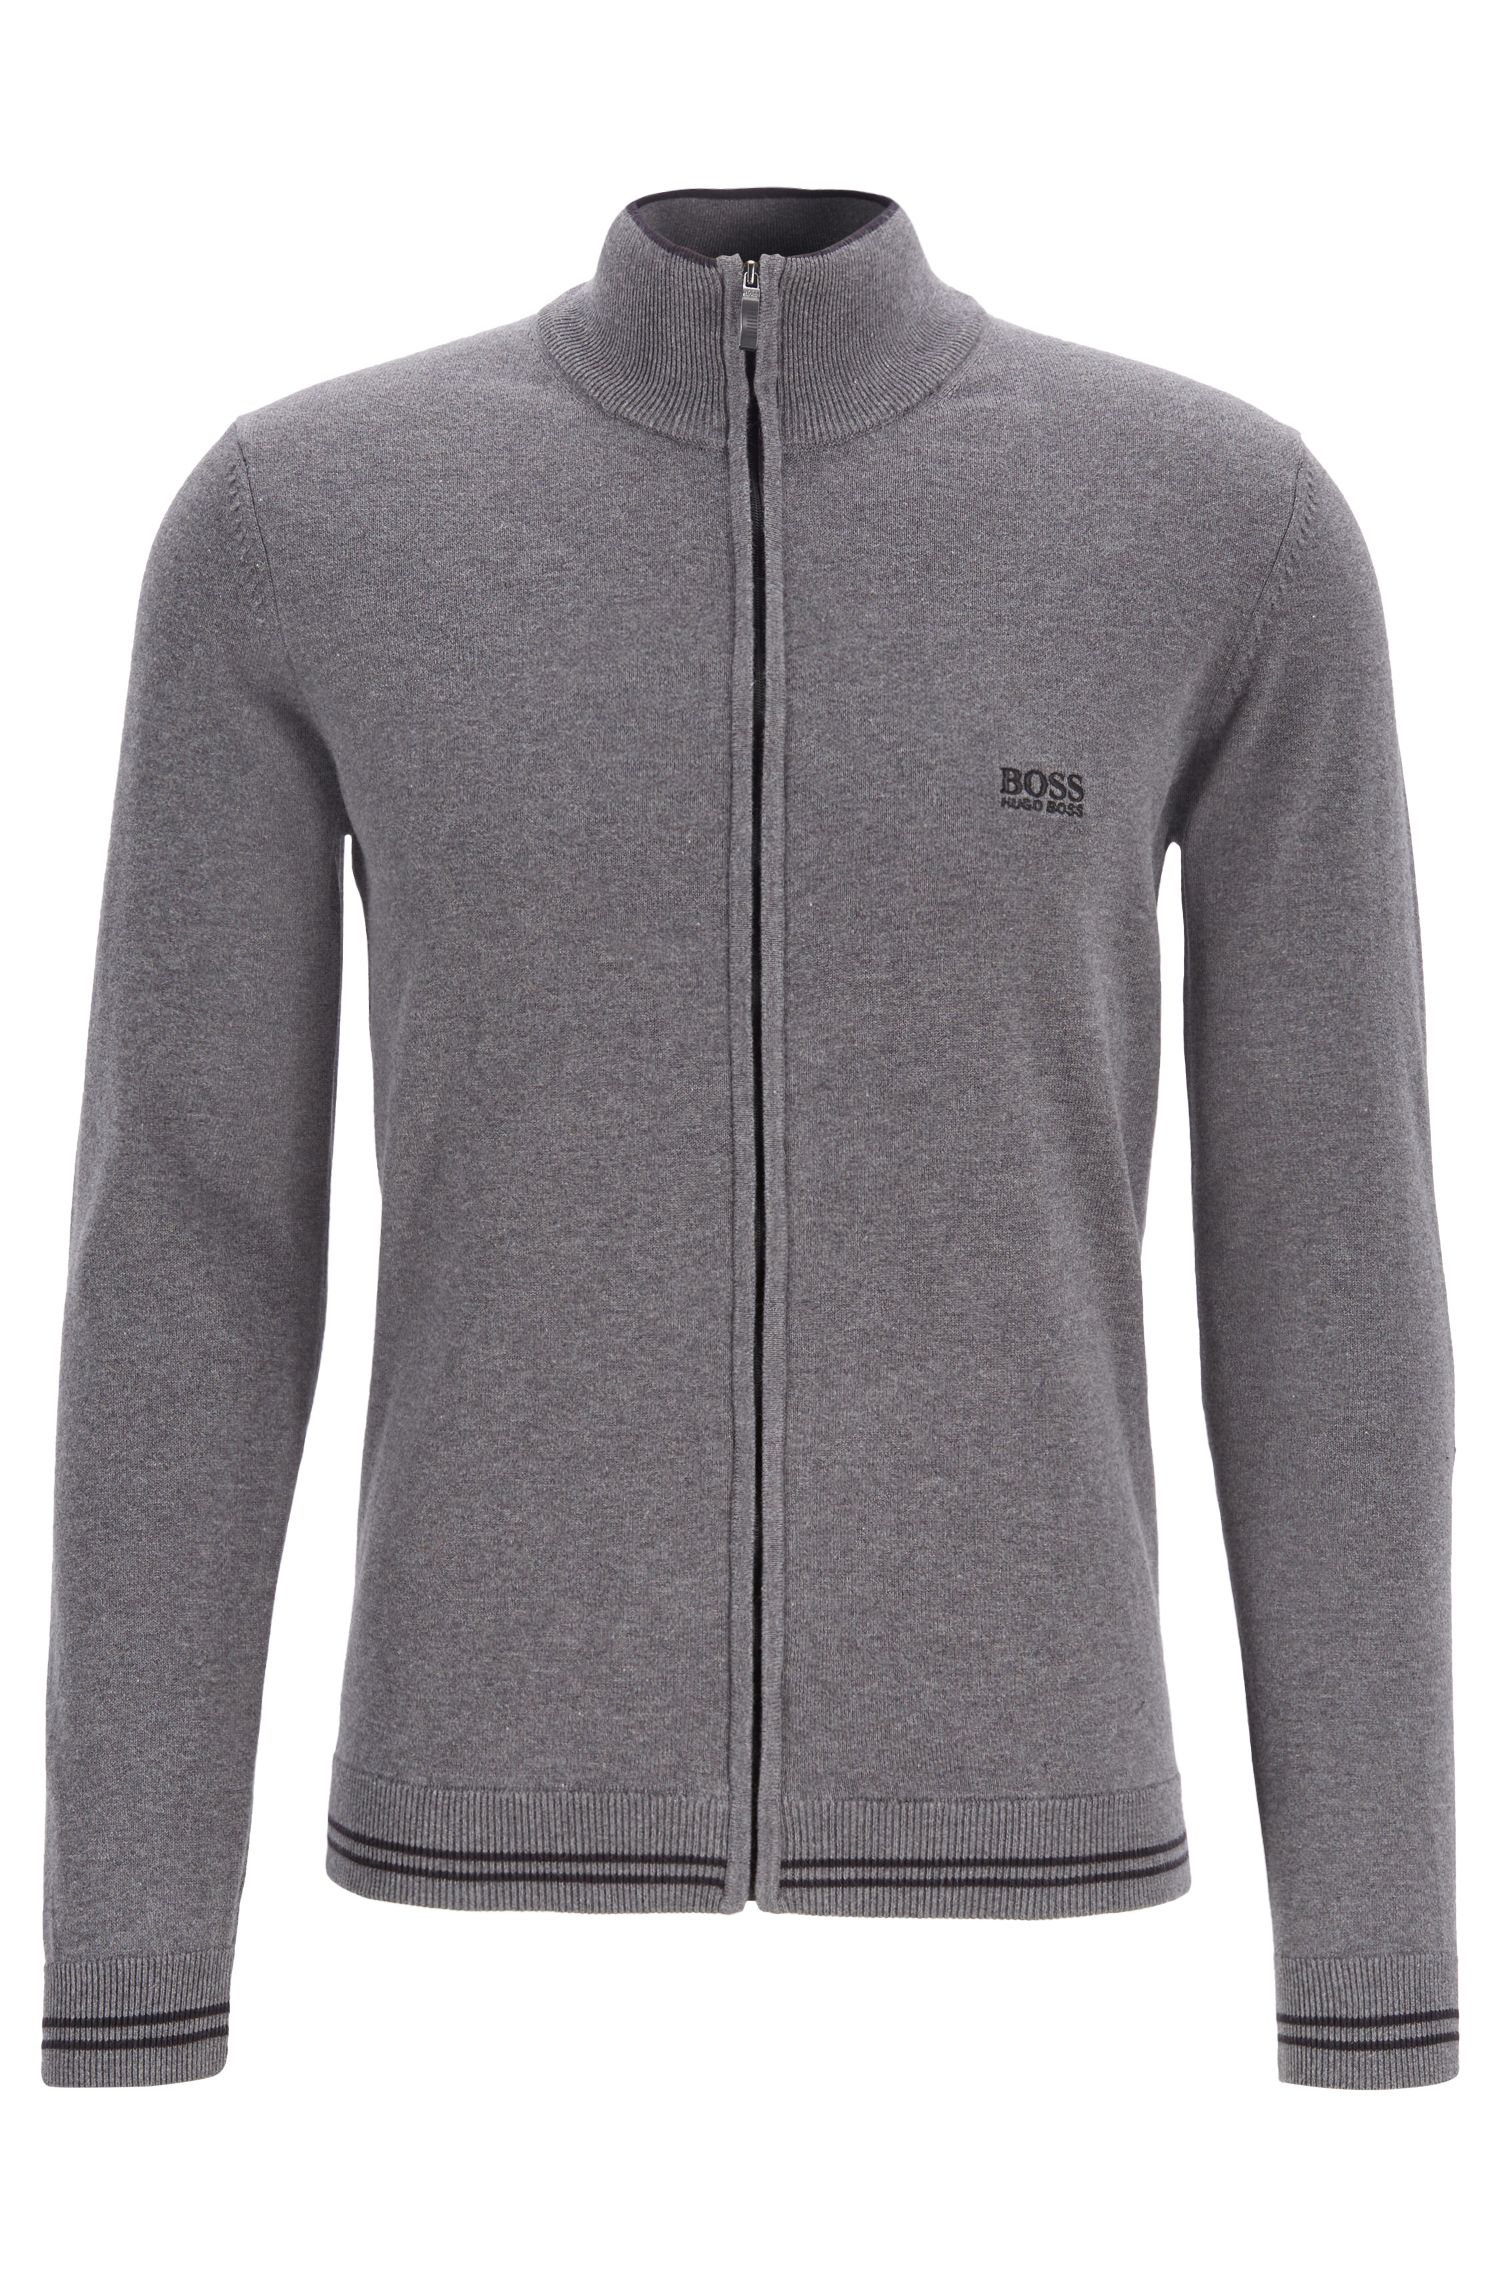 Zip-through cardigan with contrast tipping and structured details, Grey